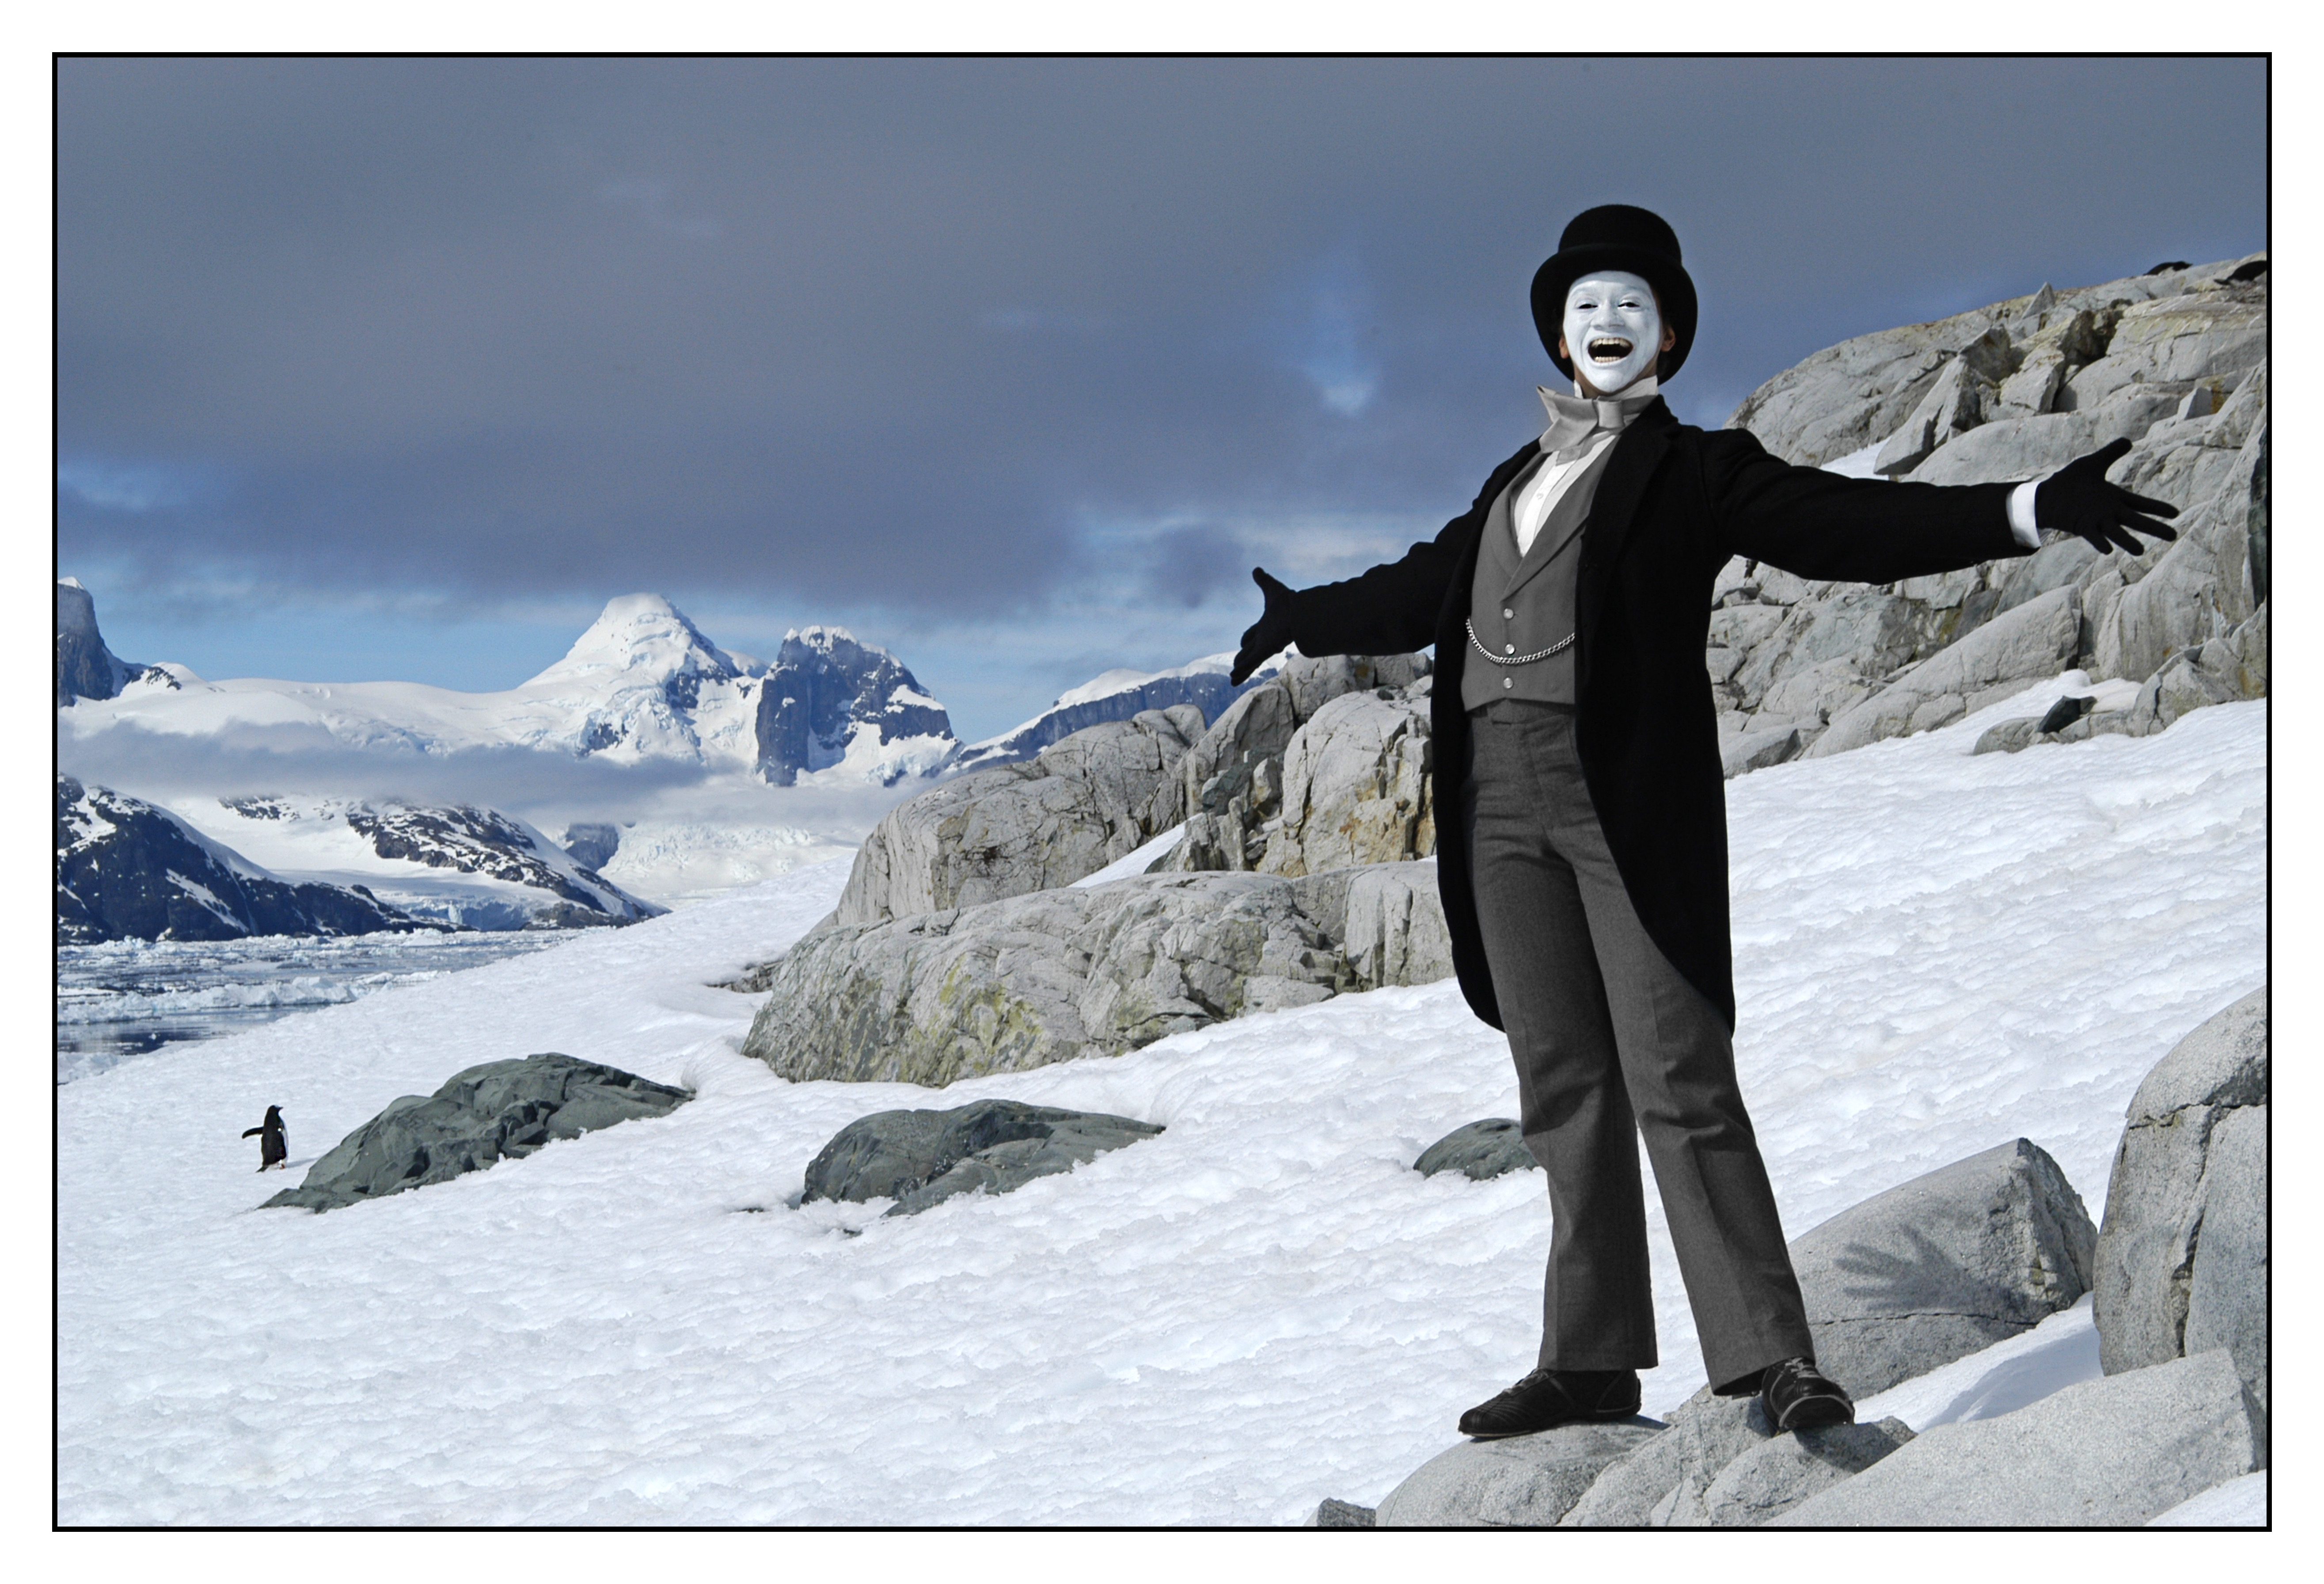 Del LaGrace Volcano, MOJ OF THE ANTARCTIC, OPEN ARMS, ANTARCTICA, 2005, Giclée print, 44 x 53 in. Courtesy of the artist. VoCA. About Face.